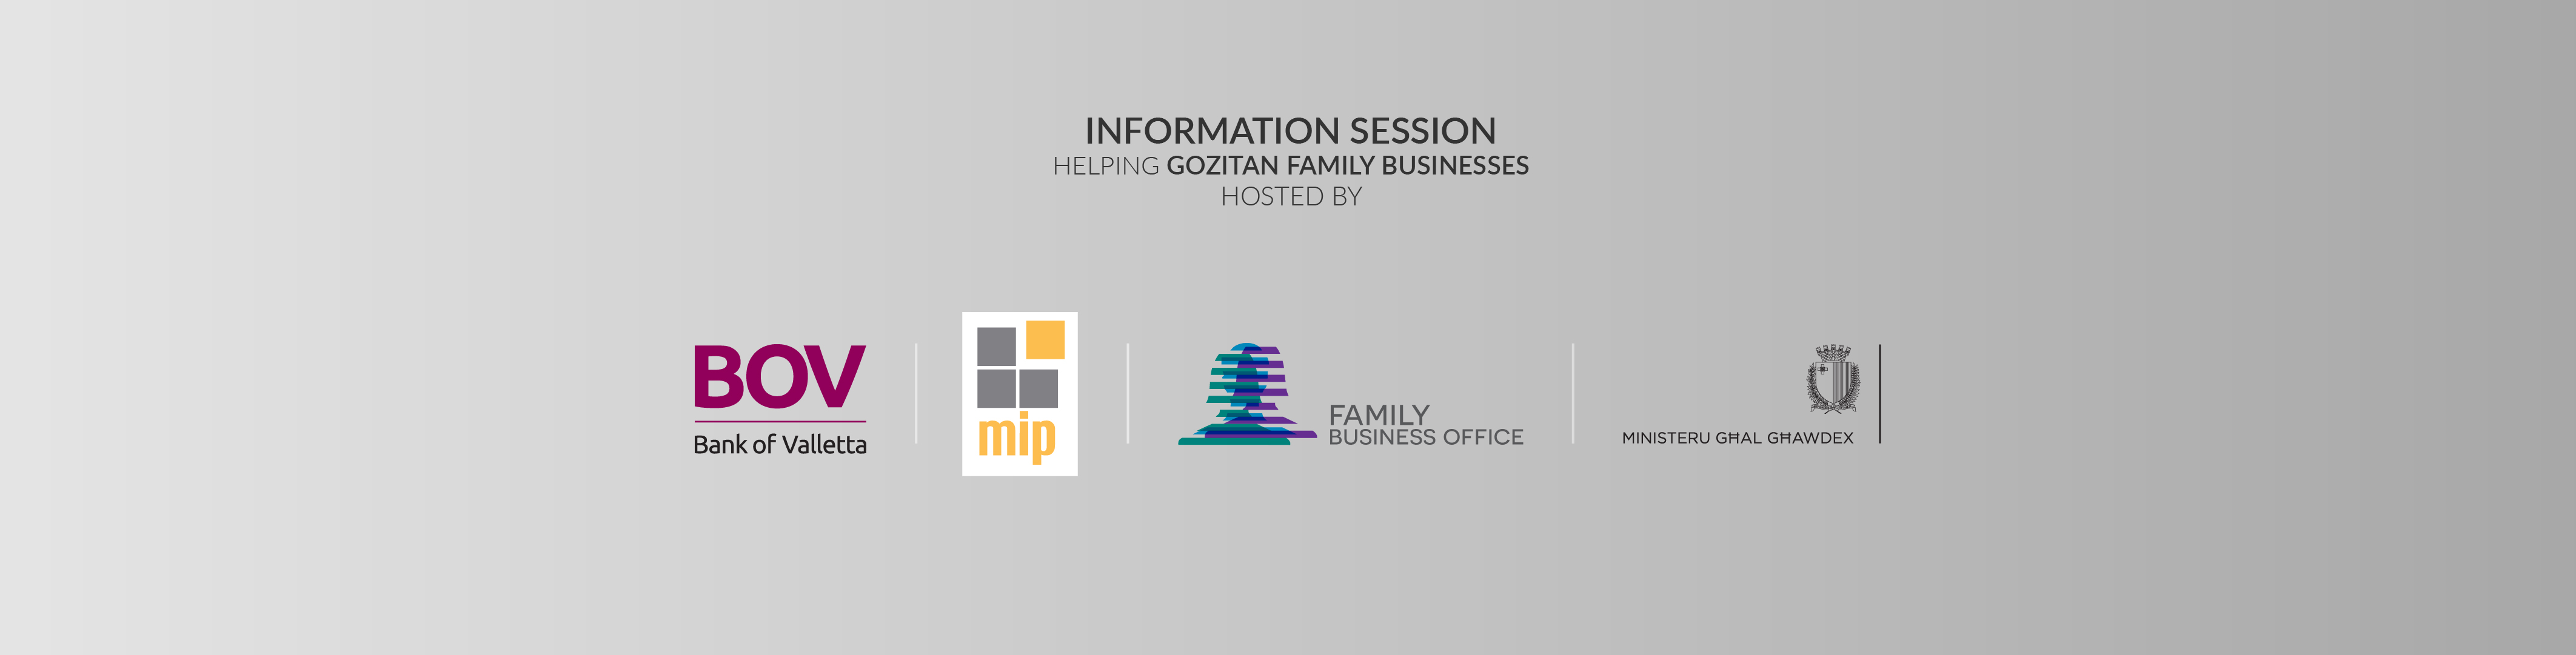 Information Session: Helping Gozitan Family Businesses - Family